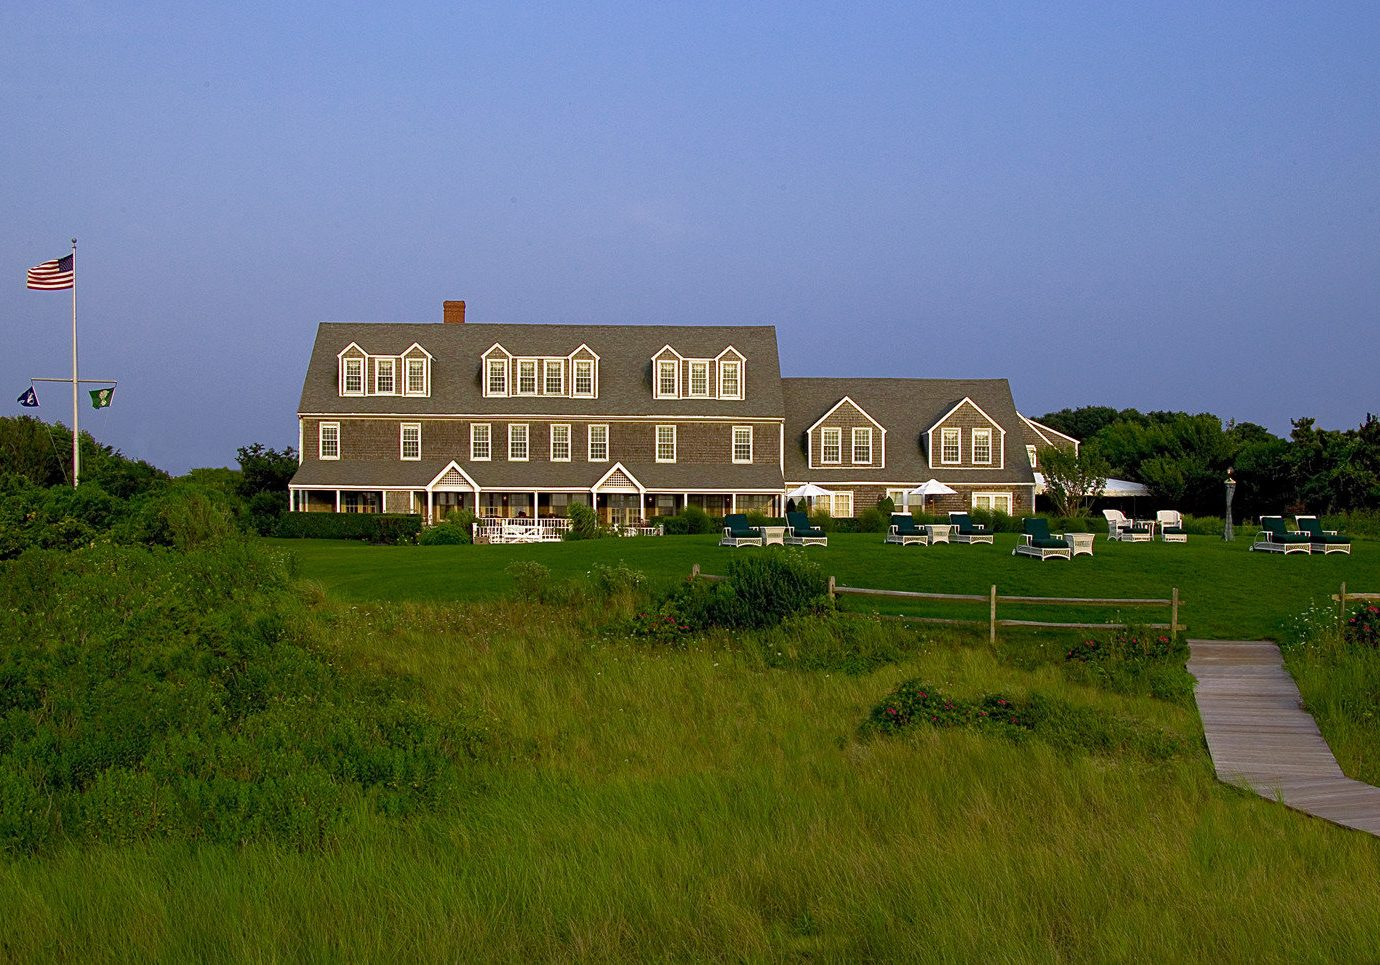 Hotels Romance grass sky outdoor house estate building field residential area rural area hill Farm home Coast suburb Village tower grassy lush sign